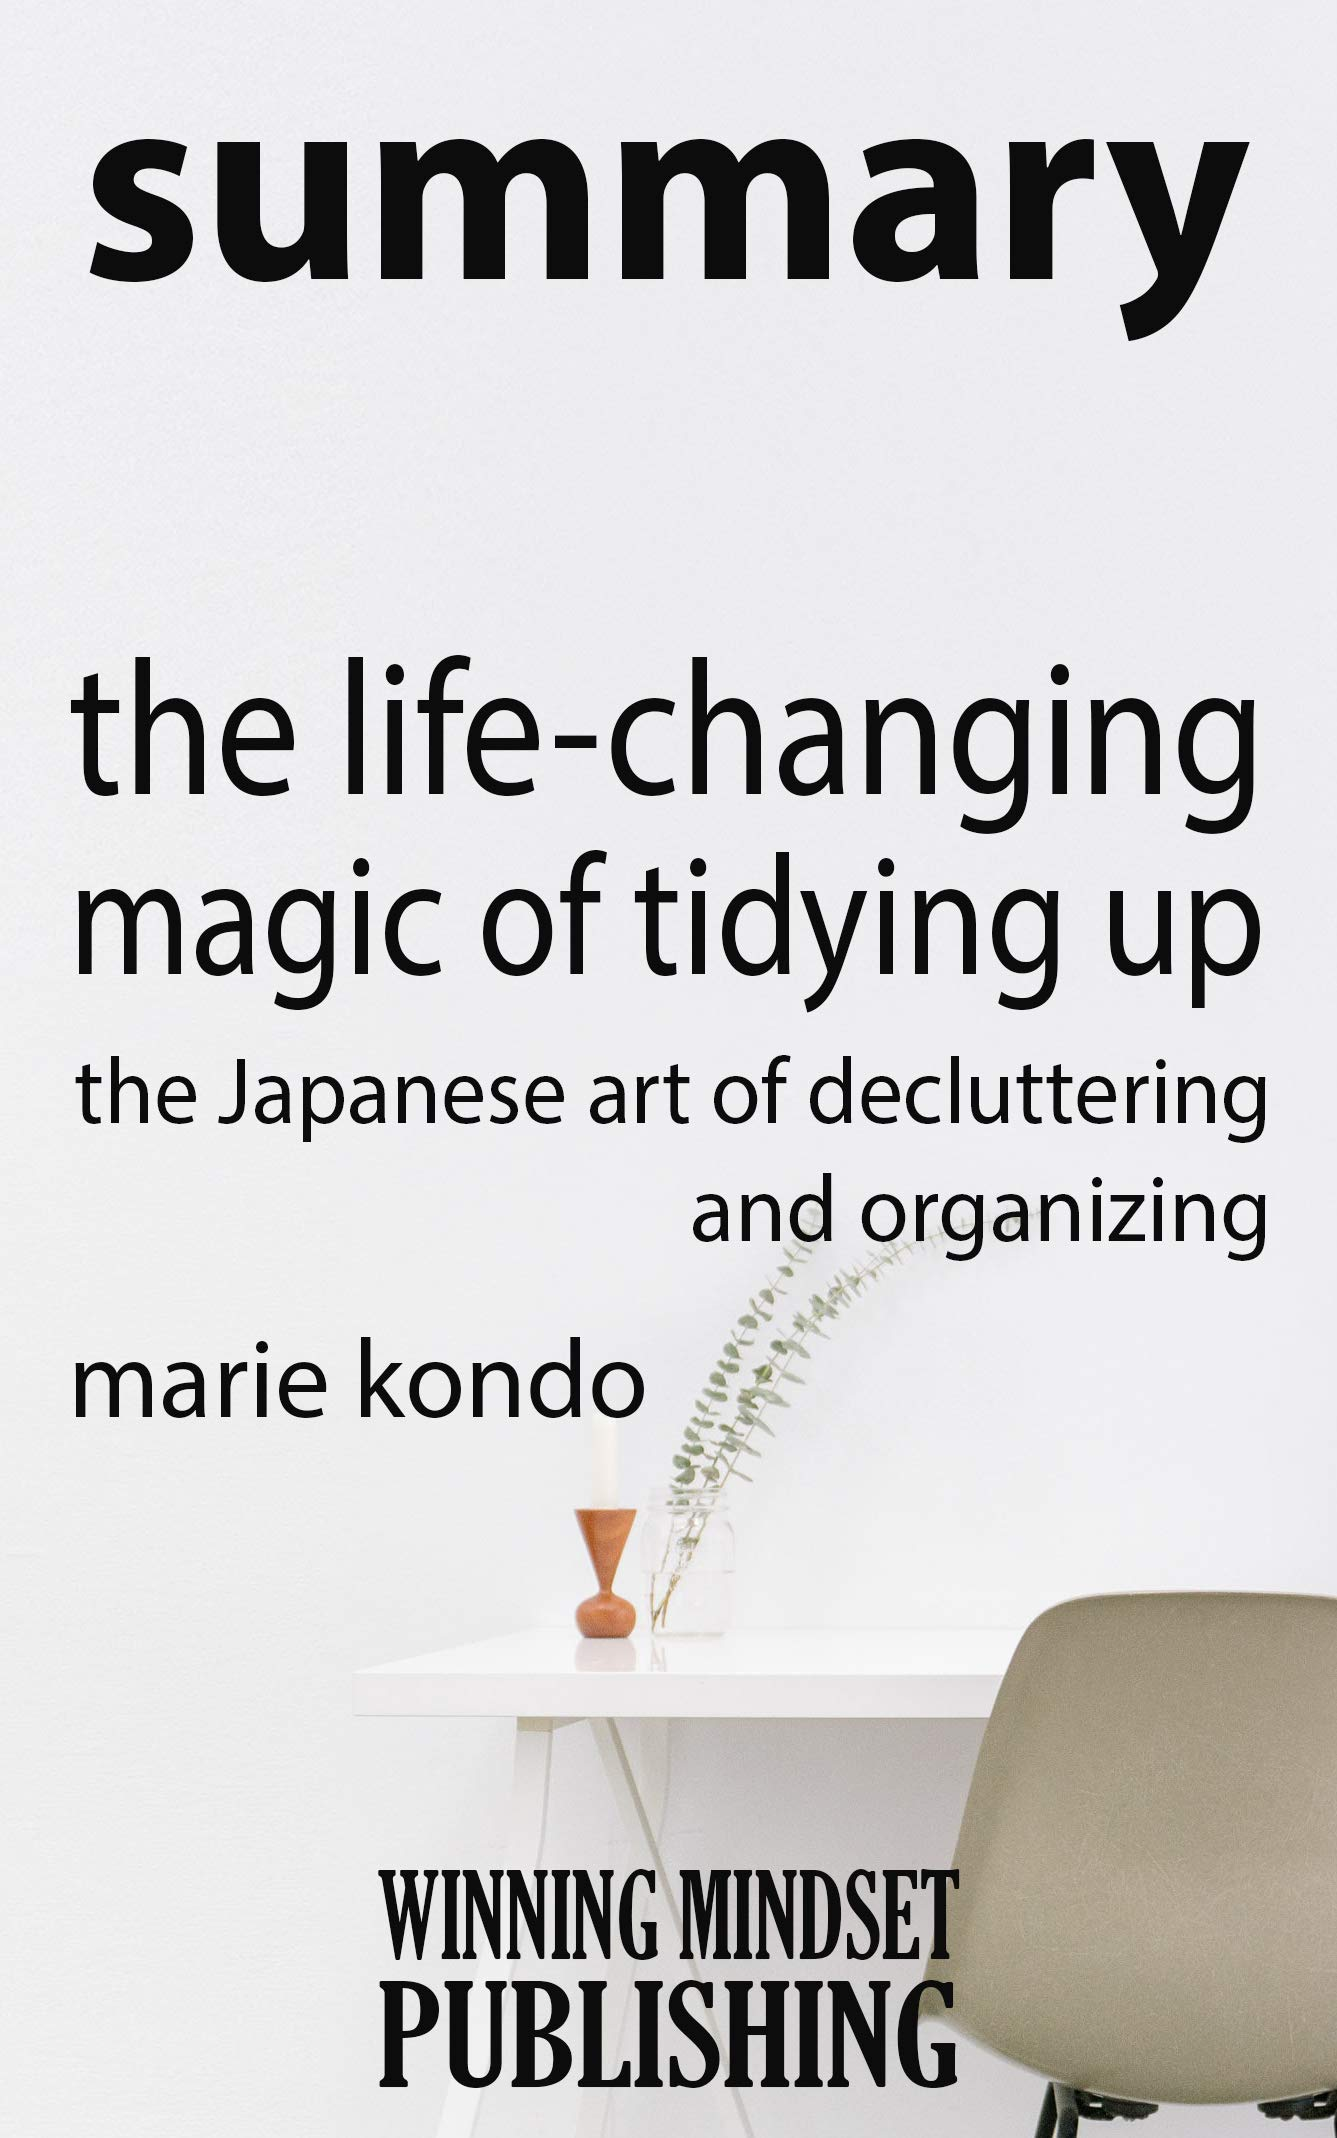 """Summary: Marie Kondo's """"The Life-Changing Magic of Tidying Up: The Japanese Art of Decluttering and Organizing"""""""